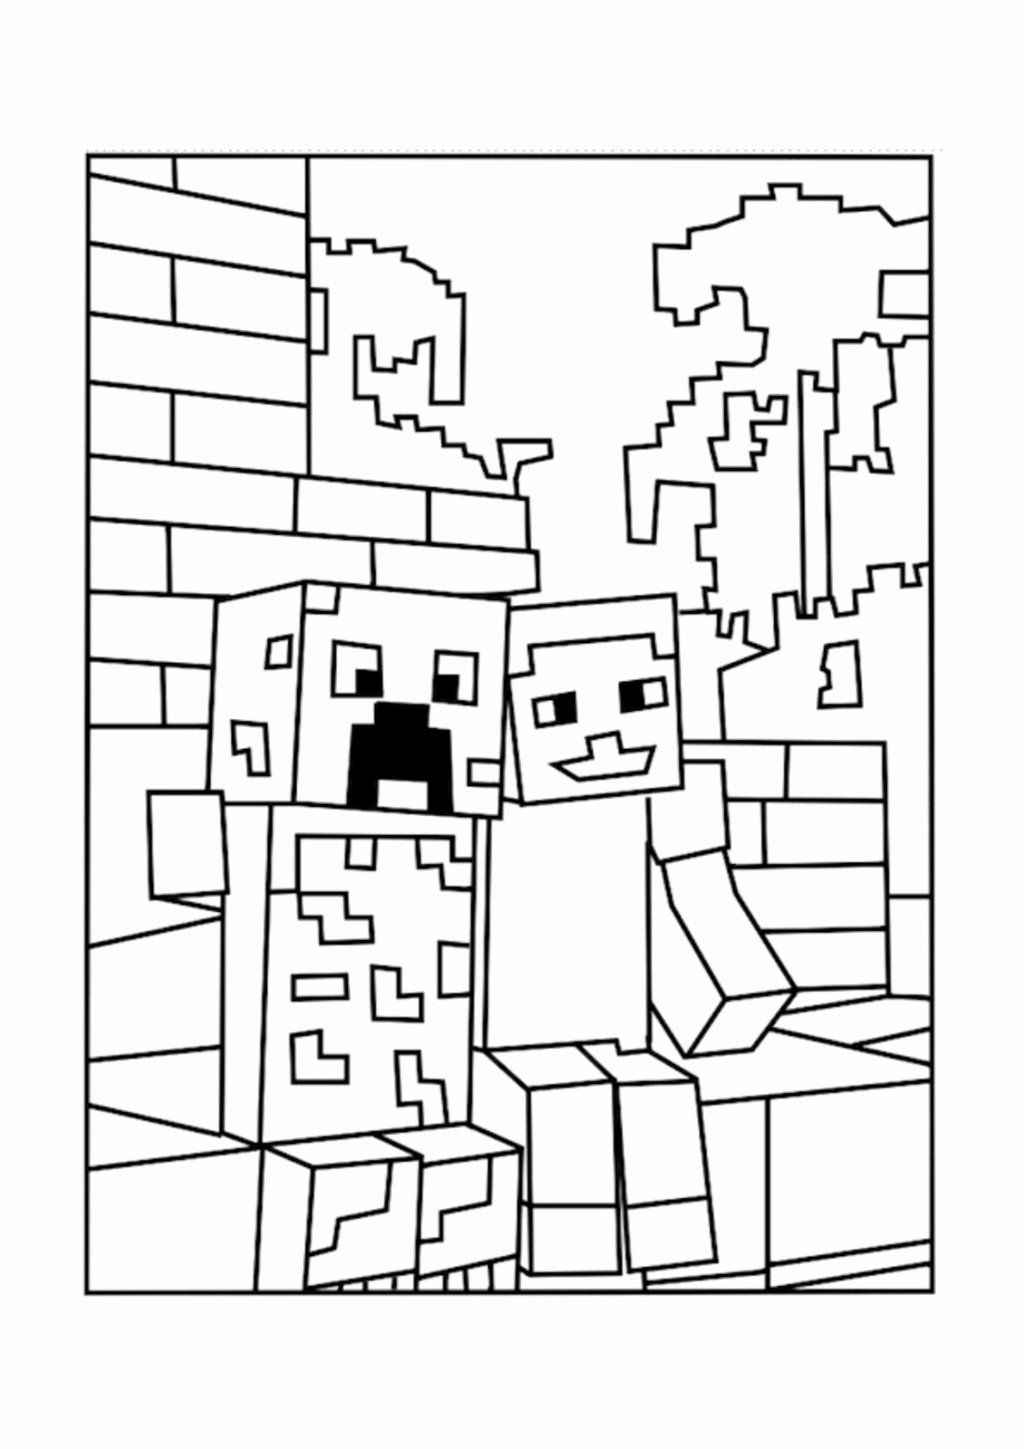 Inside Out Coloring Pictures Inspirational B 2019 08 Sword Coloring In 2020 Minecraft Coloring Pages Minecraft Printables Free Printable Coloring Pages